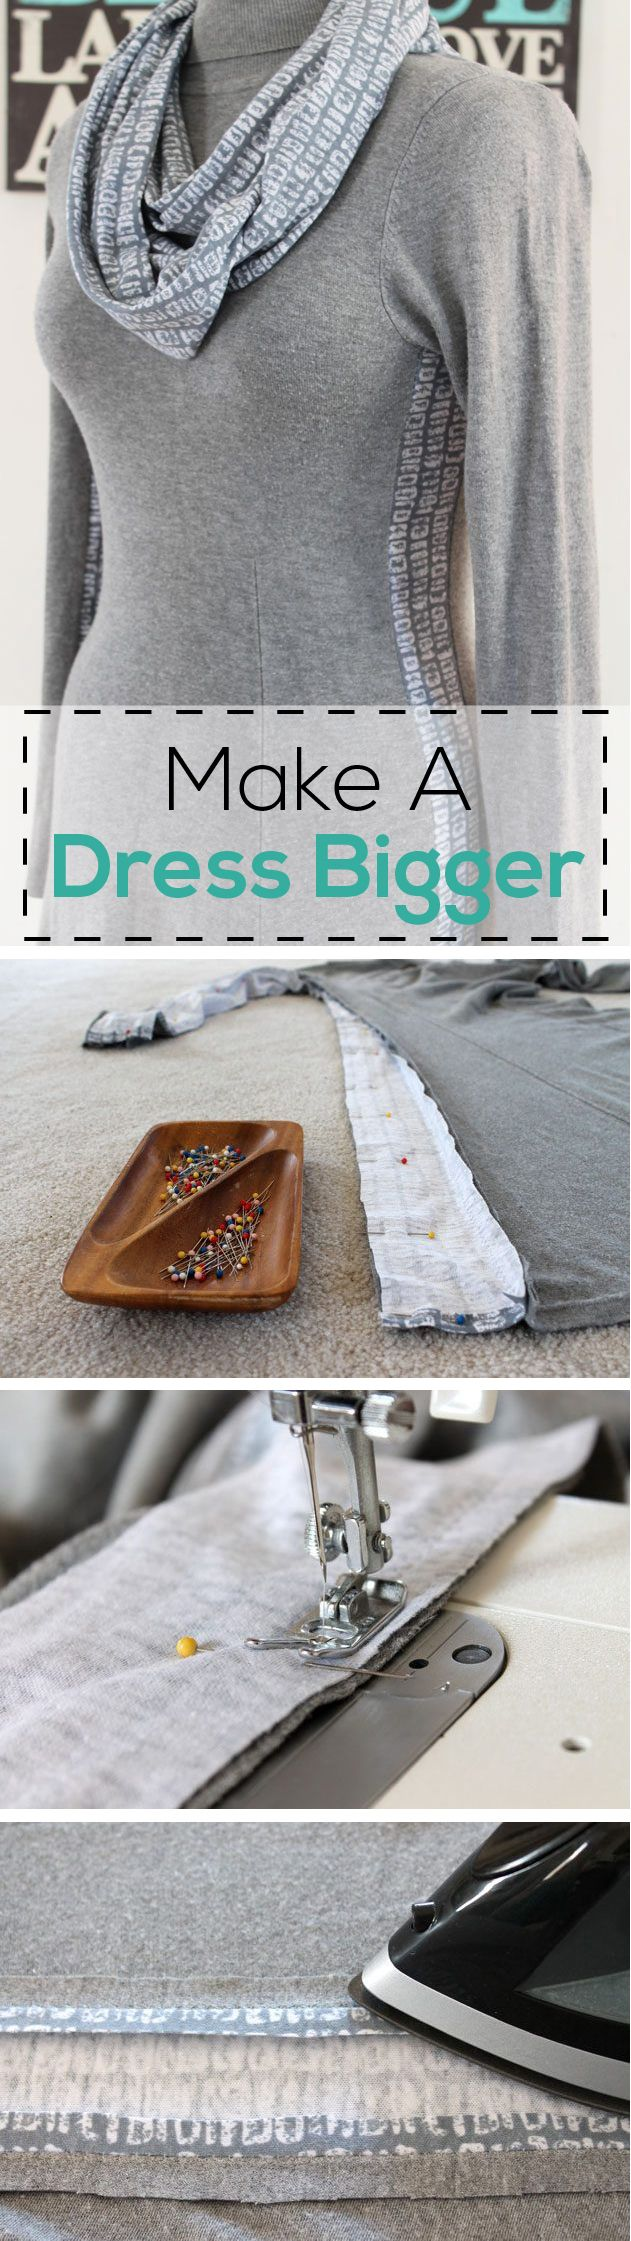 How to add extra fabric panels )the right way) to a dress that may be too tight. Simple step by step tutorial with pictures on the site! http://www.ehow.com/how_8612925_make-dress-bigger.html?utm_source=pinterest.com&utm_medium=referral&utm_content=inline&utm_campaign=fanpage